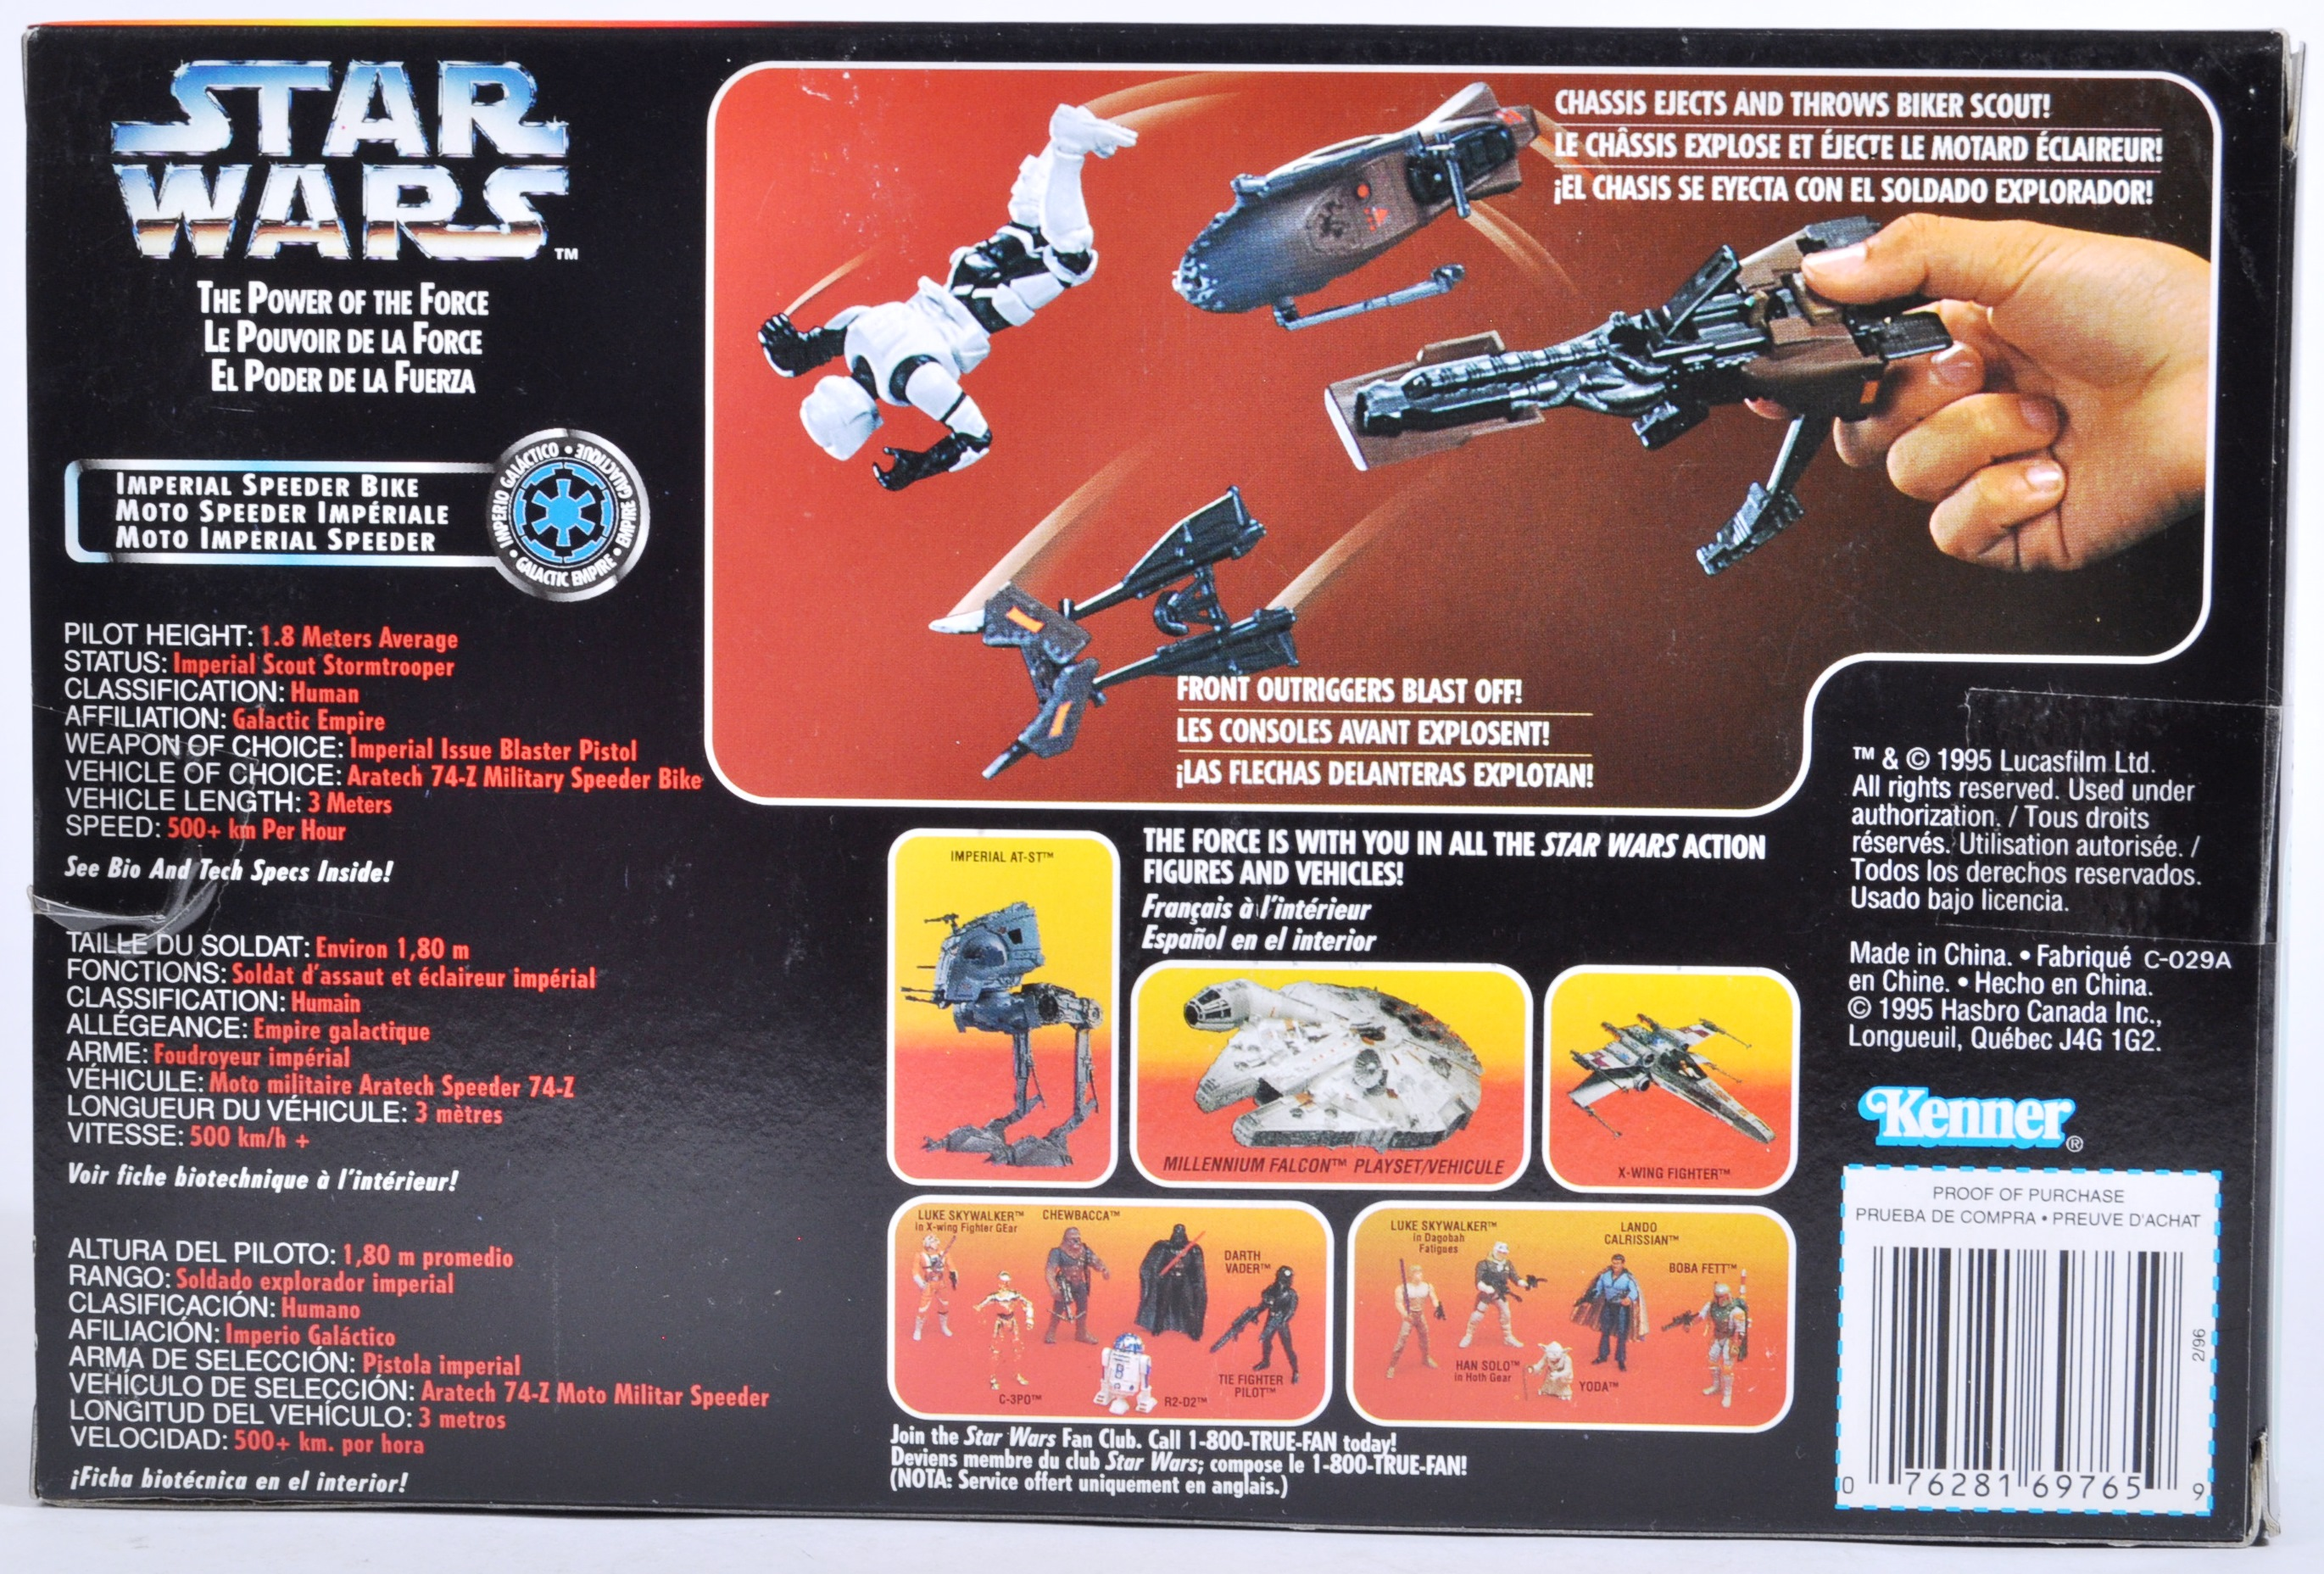 STAR WARS - COLLECTION OF KENNER POWER OF THE FORCES - Image 11 of 13